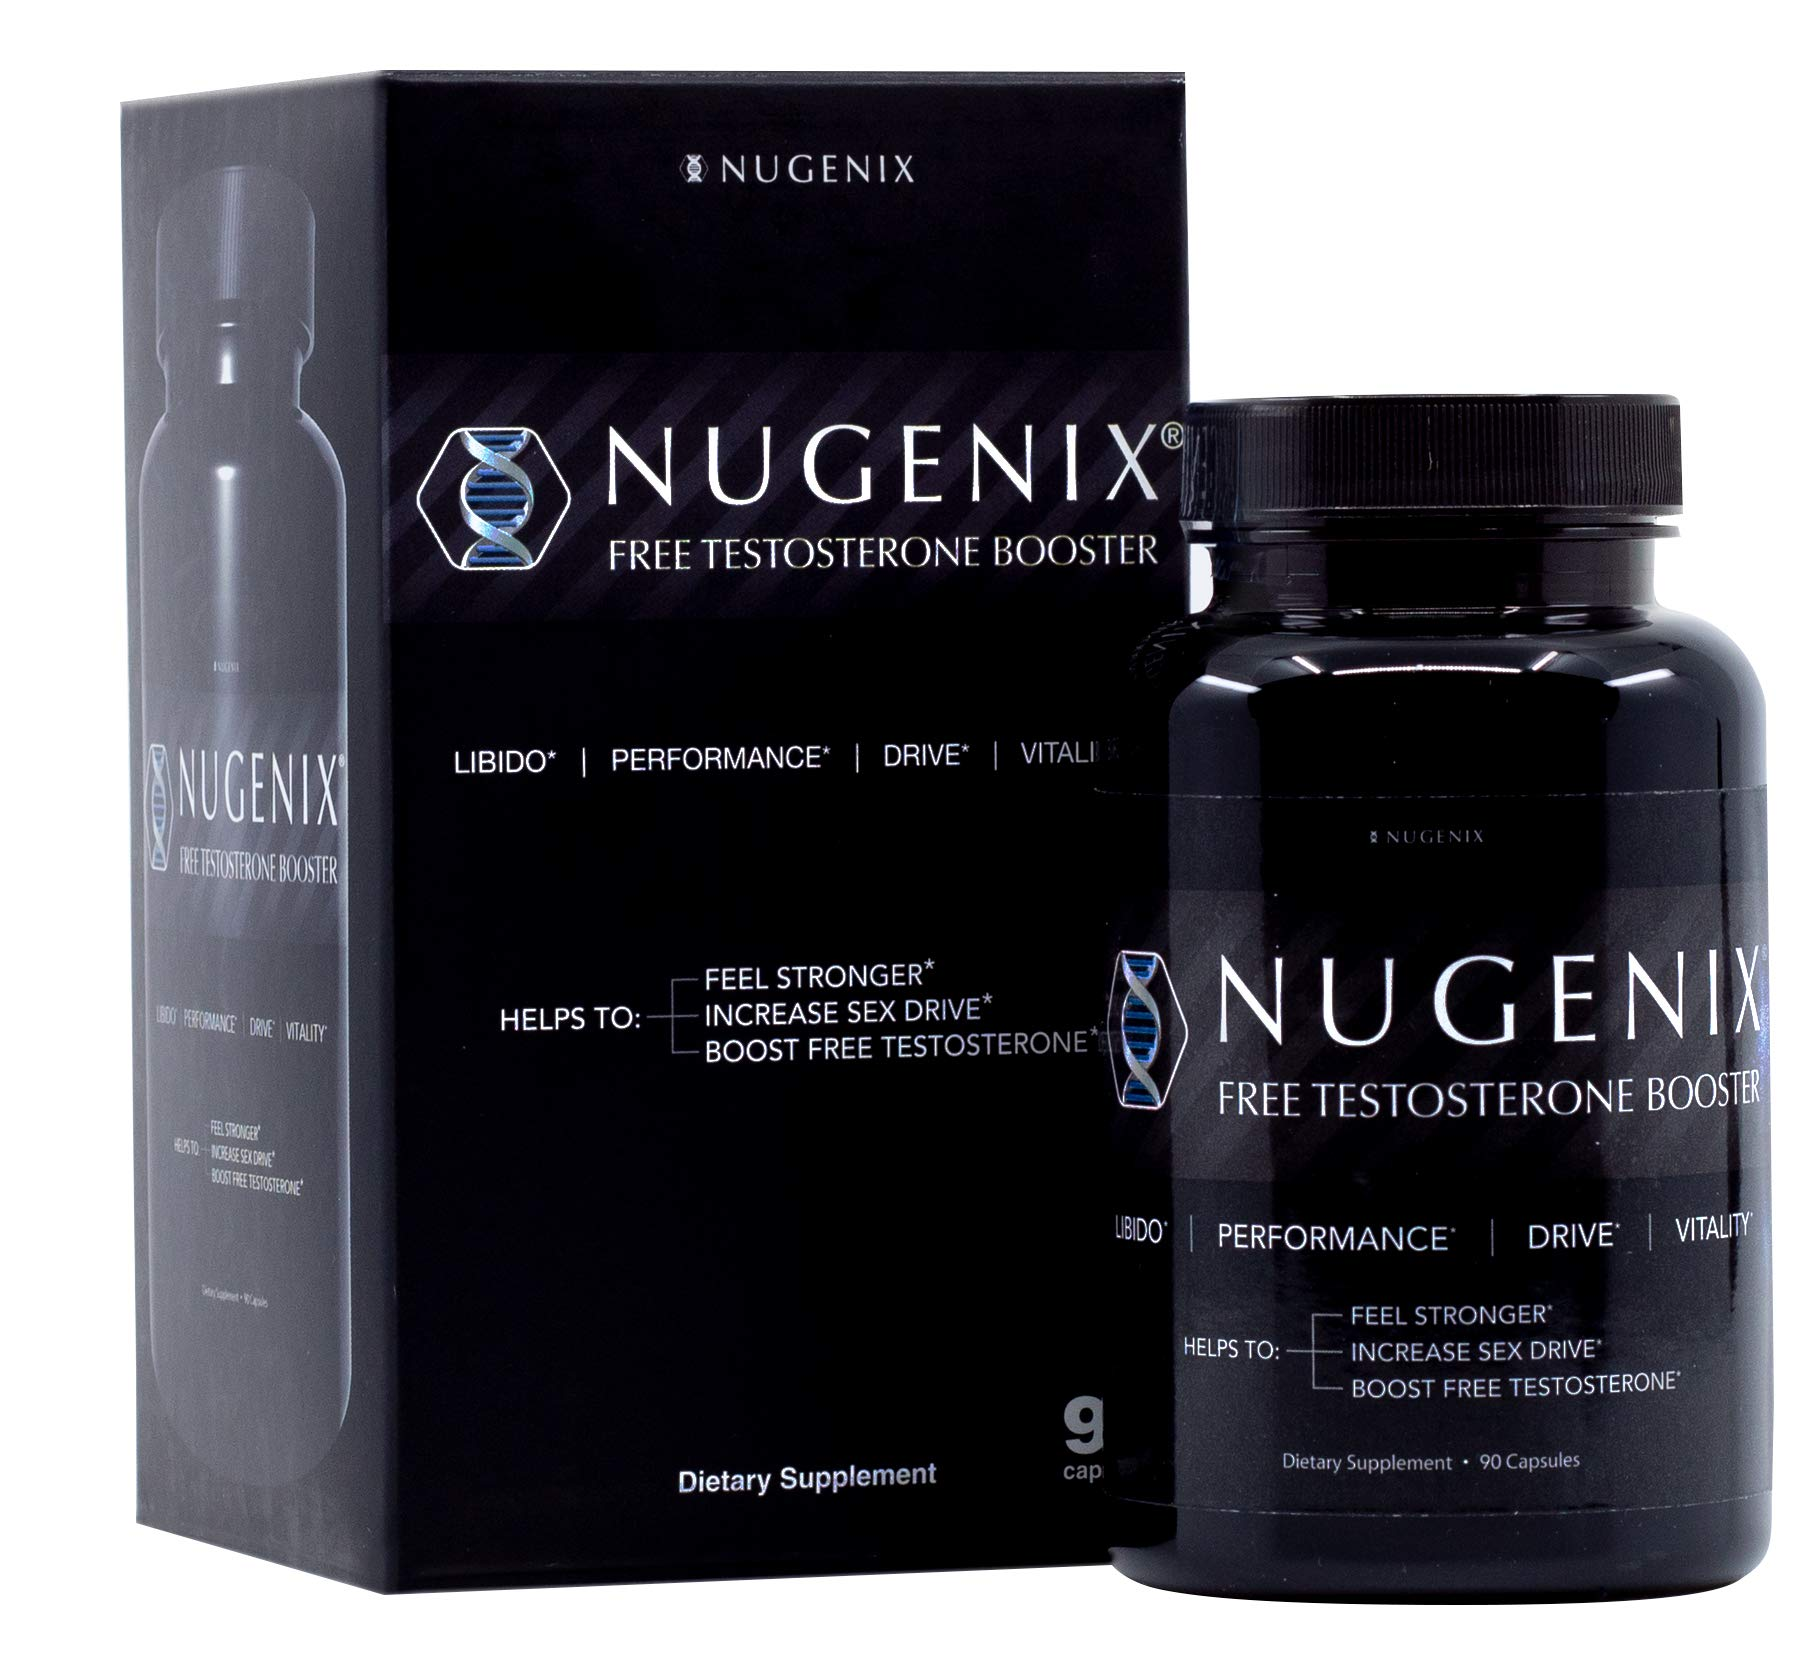 Nugenix Natural Testosterone Booster Capsules, 90 Count by Nugenix